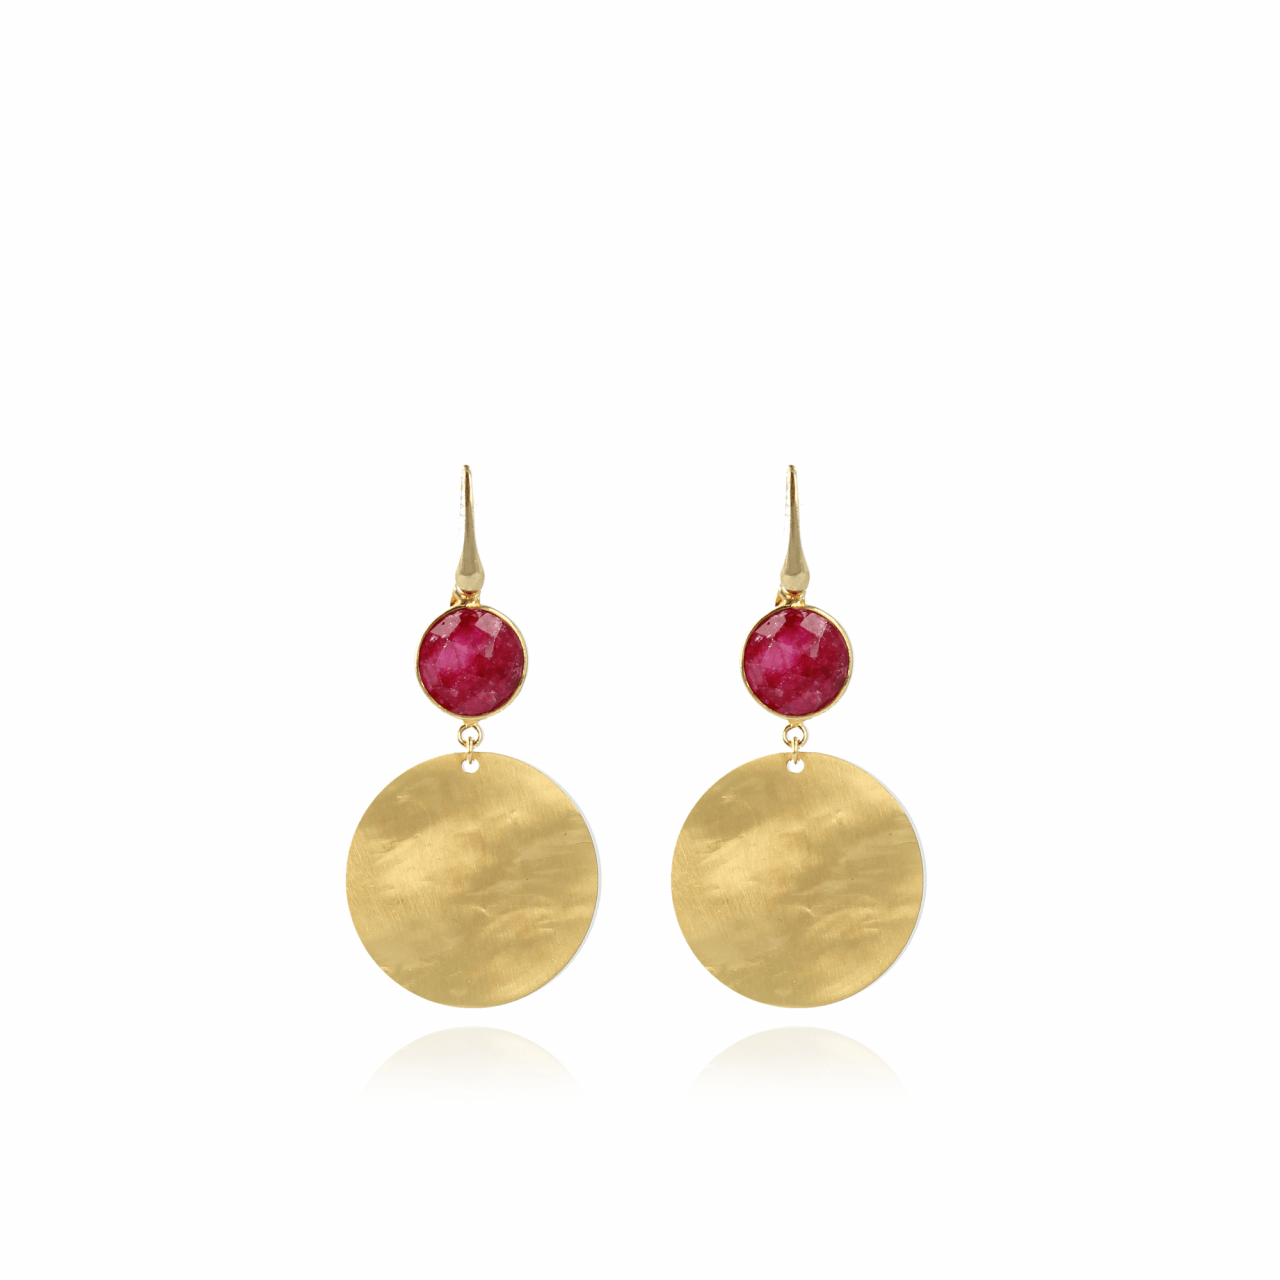 Boucles d'oreilles arrondies en quartz rouge cerise